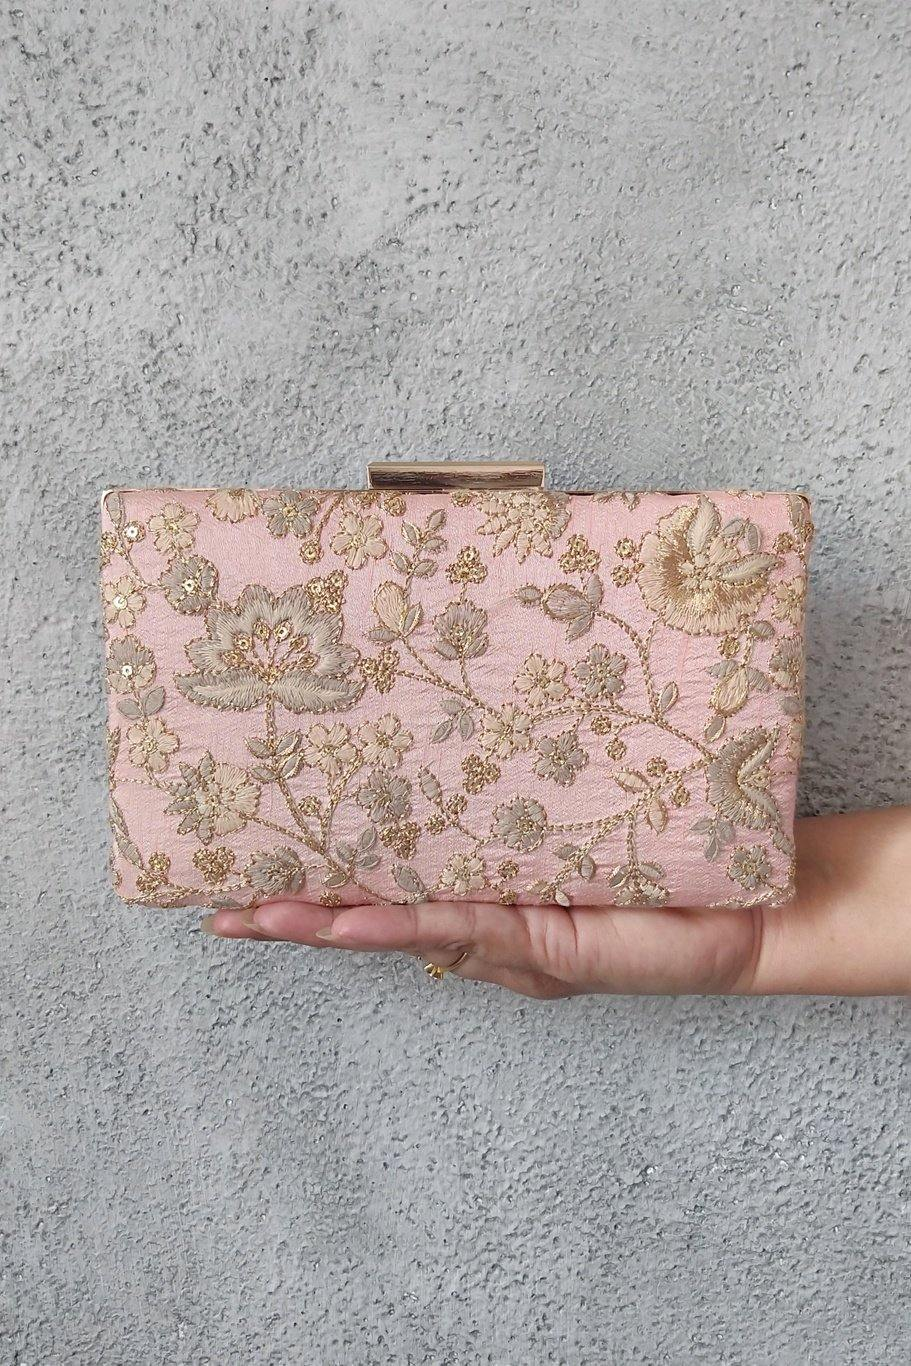 AMYRA Leya Embroidered Clutch With Sling - Peachy Pink